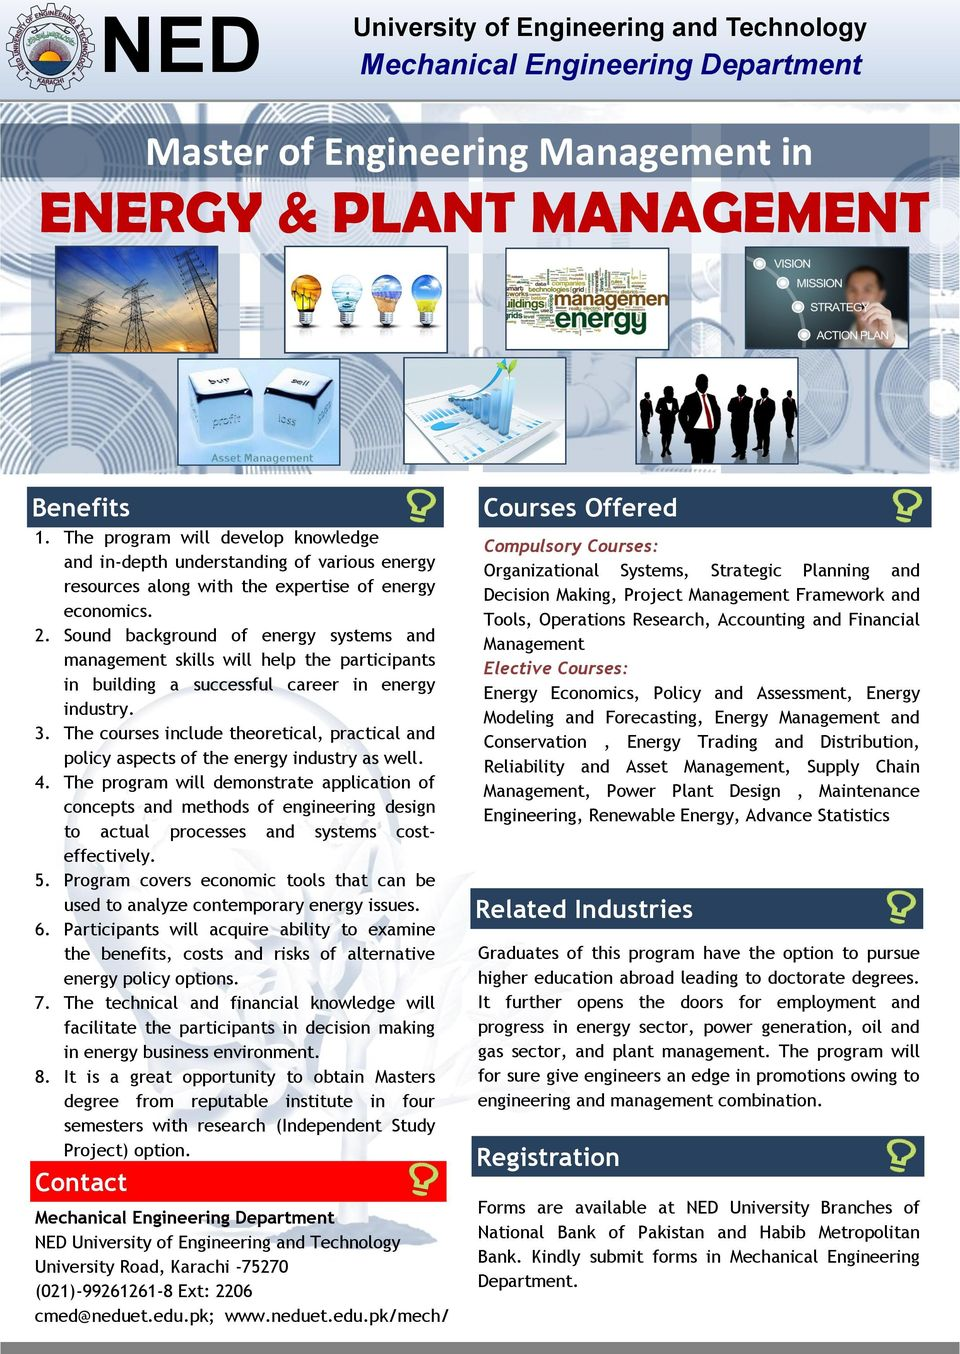 The courses include theoretical, practical and policy aspects of the energy industry as well. 4.